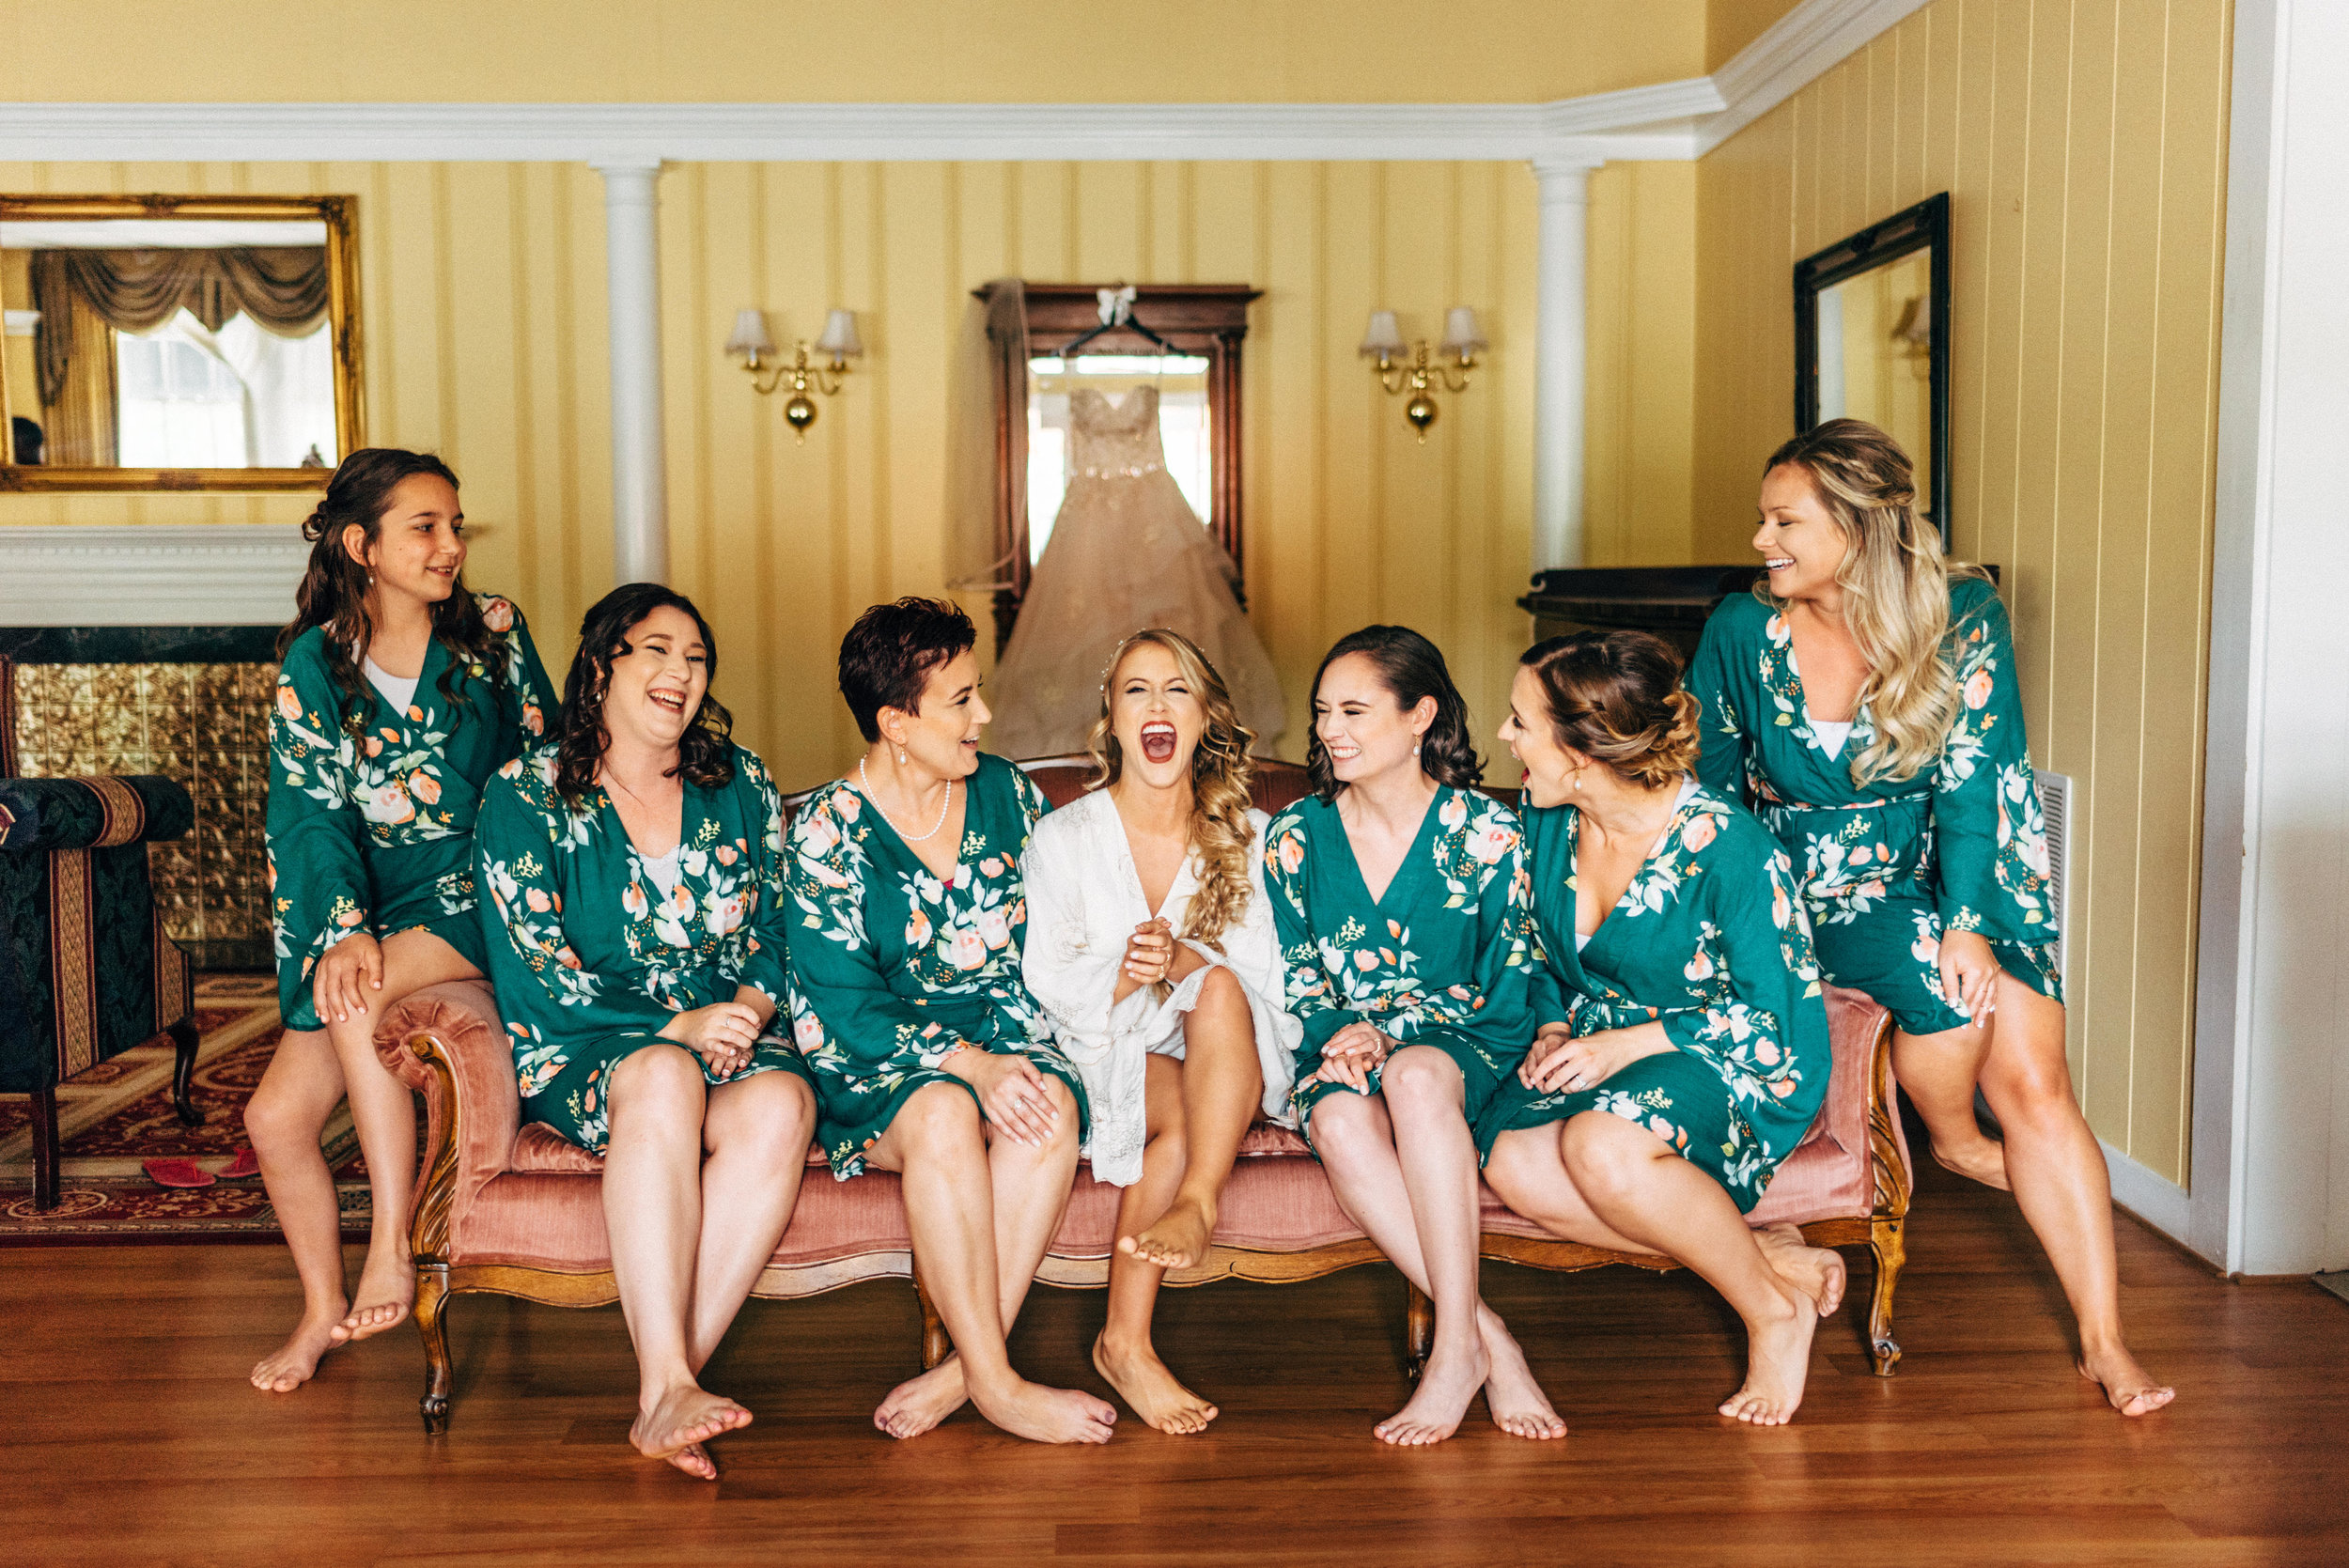 bride laughing with her bridesmaids on couch before wedding